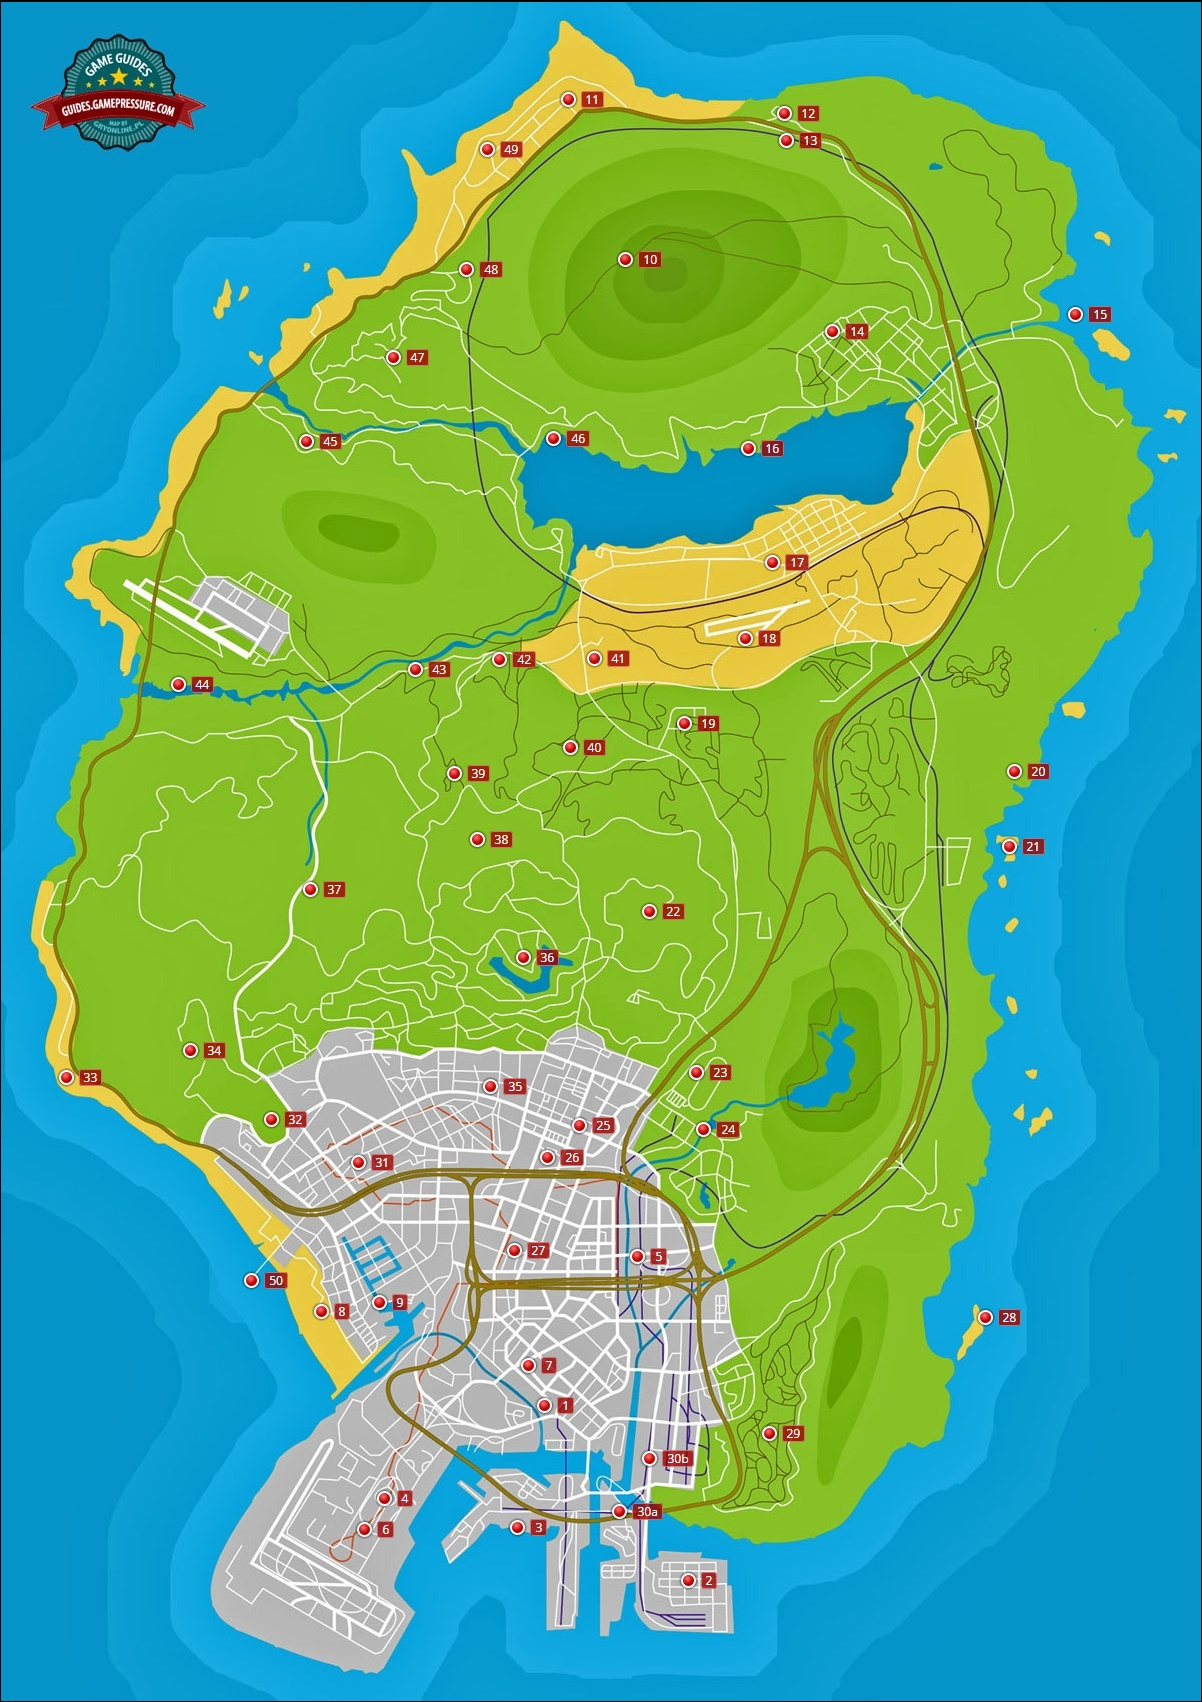 Gta Peyote Locations : peyote, locations, Steam, Community, Guide, Grand, Theft, Collectible, Locations